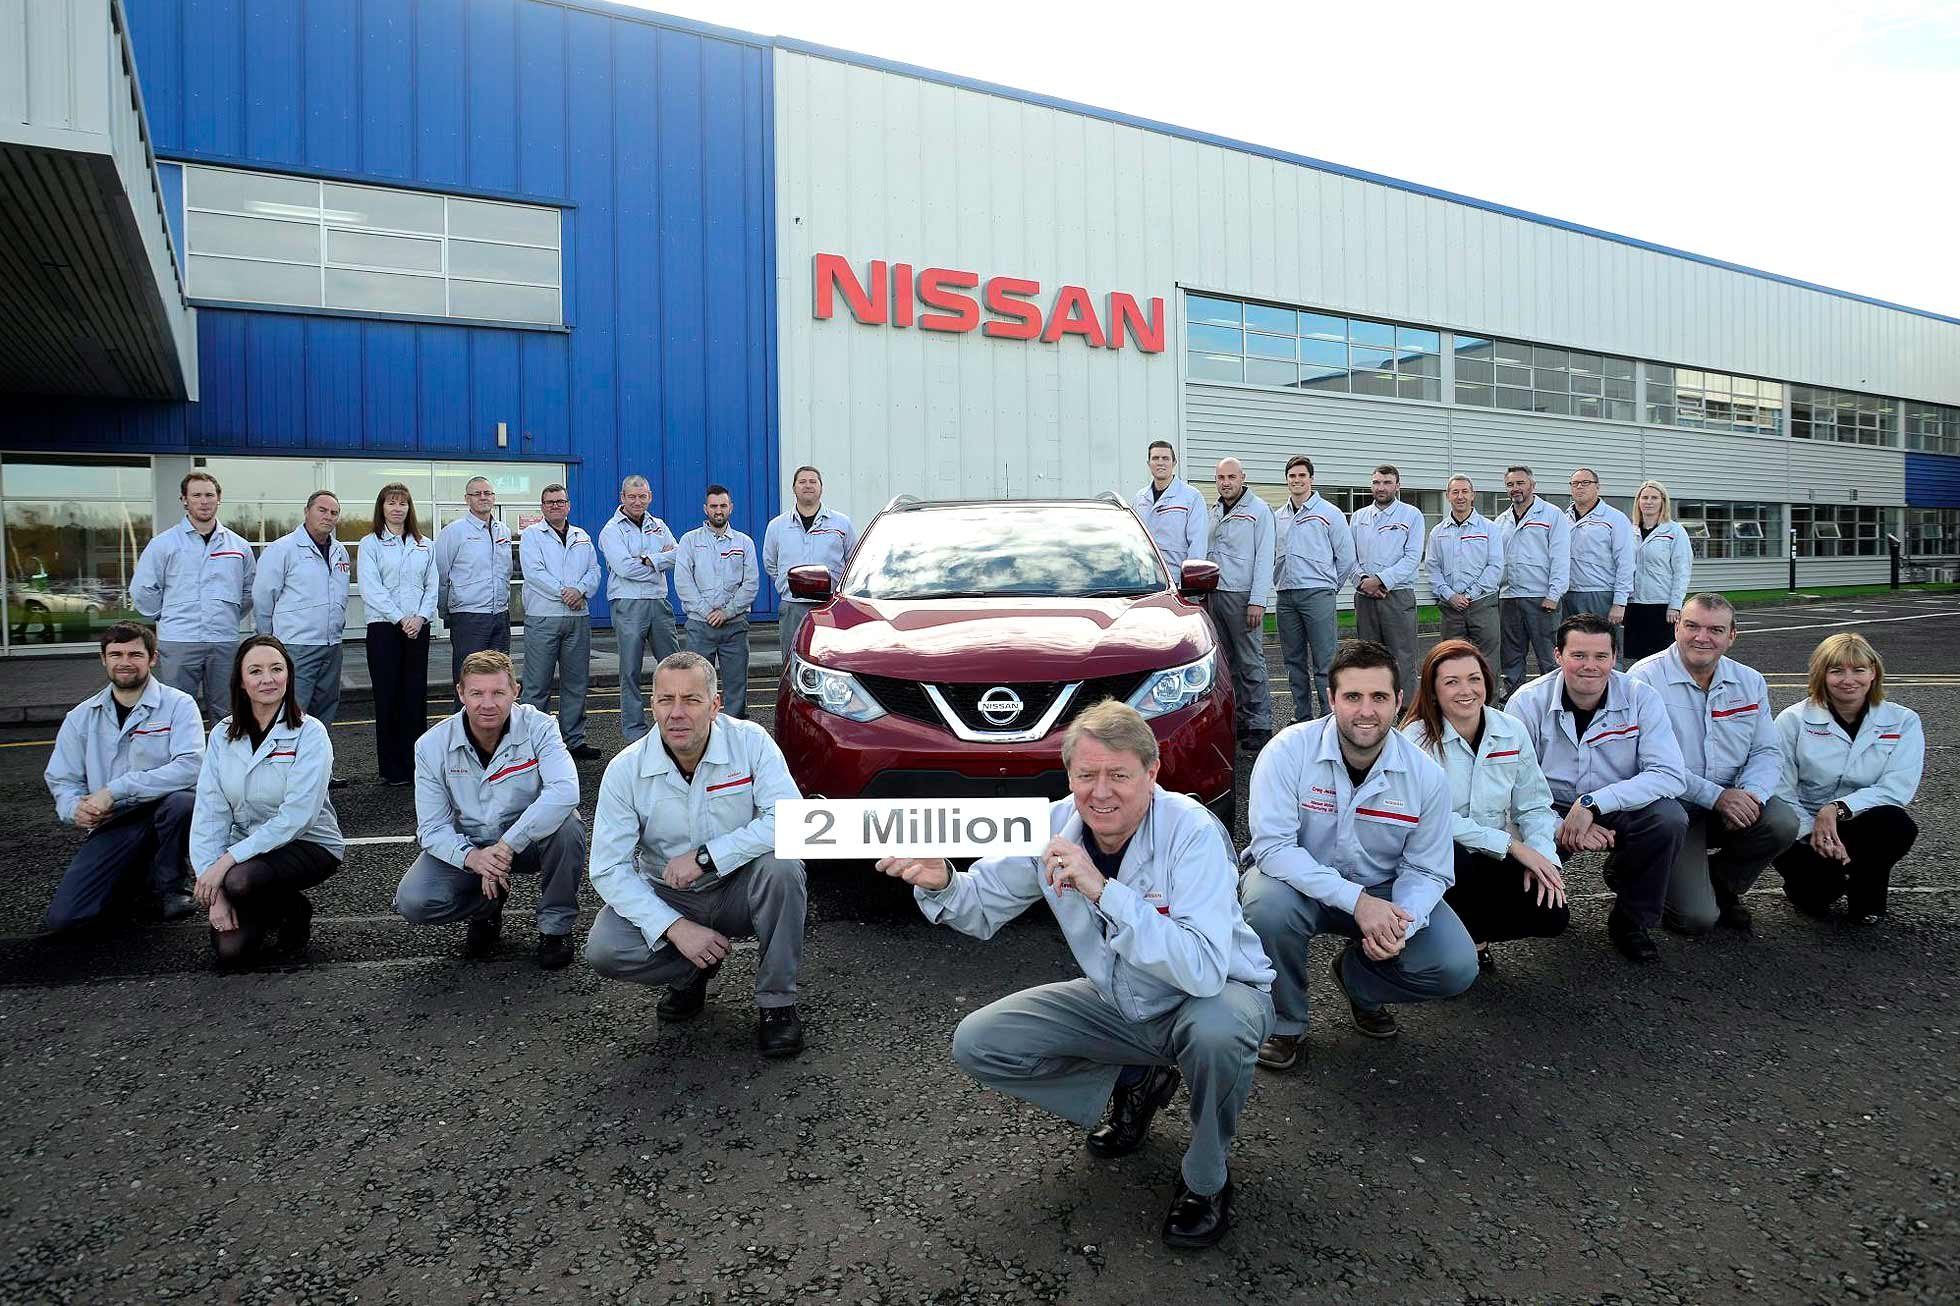 Nissan Qashqai hits 2 million